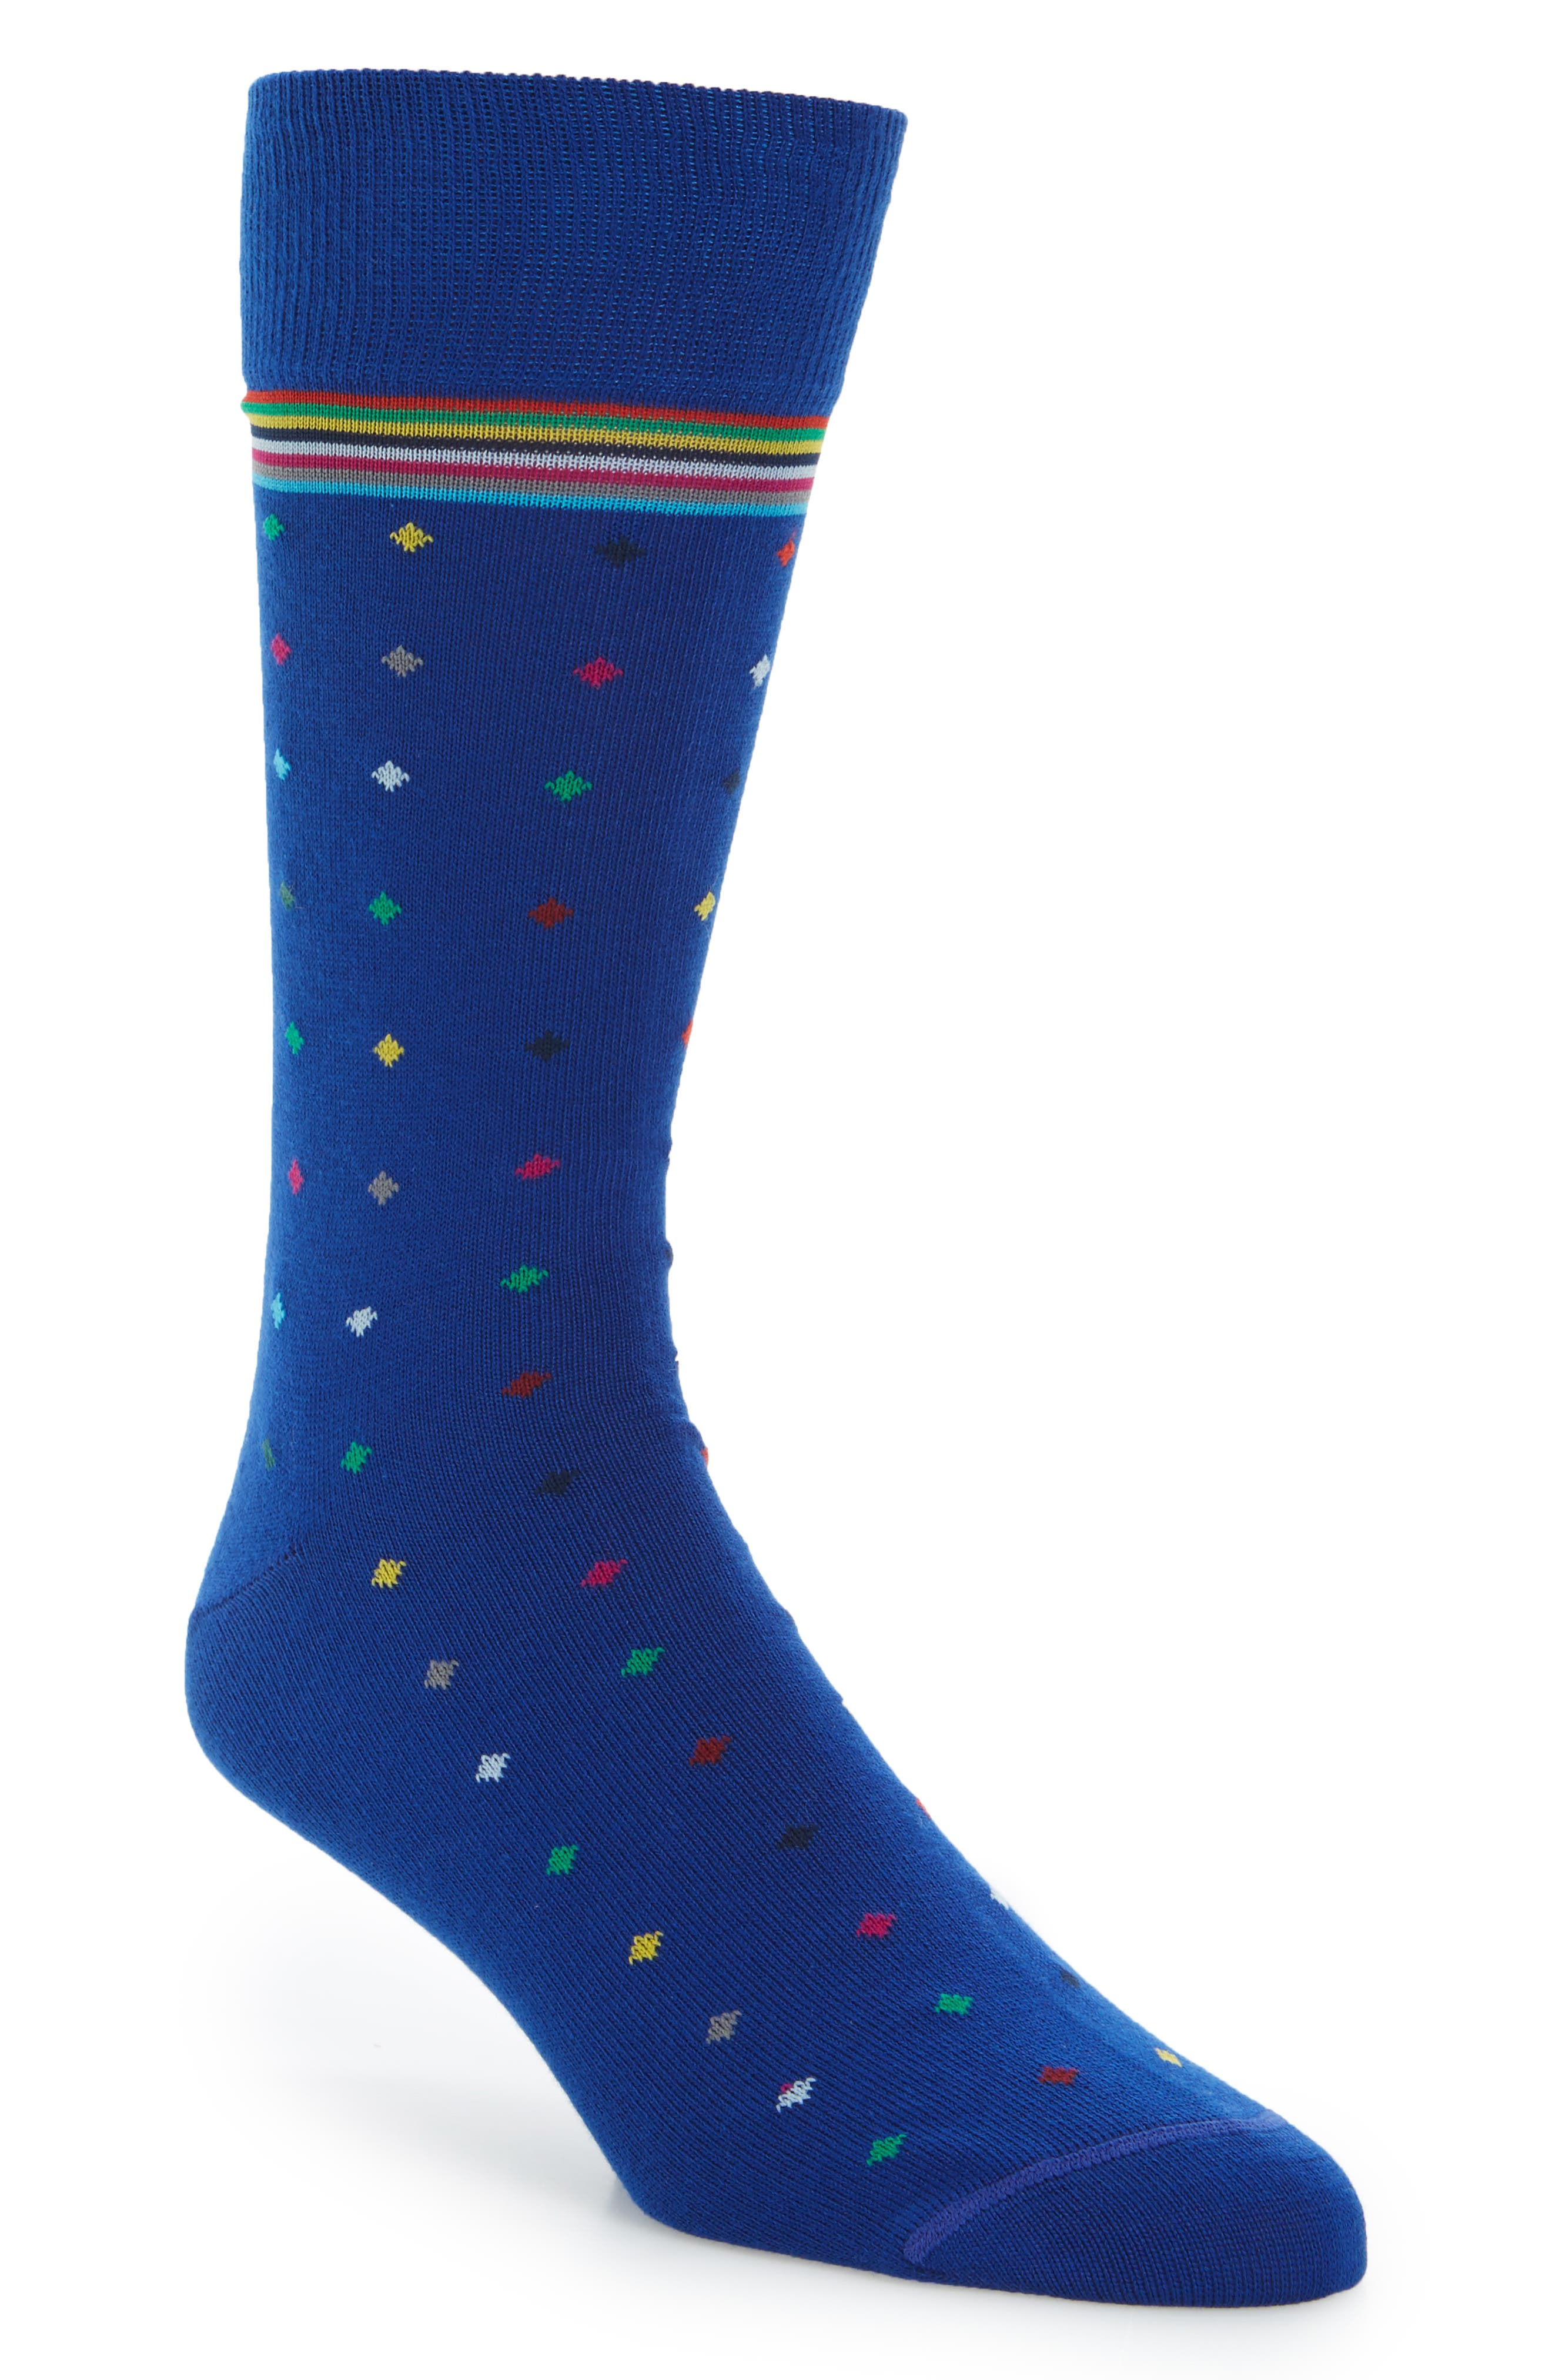 Diamond Stripe Socks,                         Main,                         color, Blue